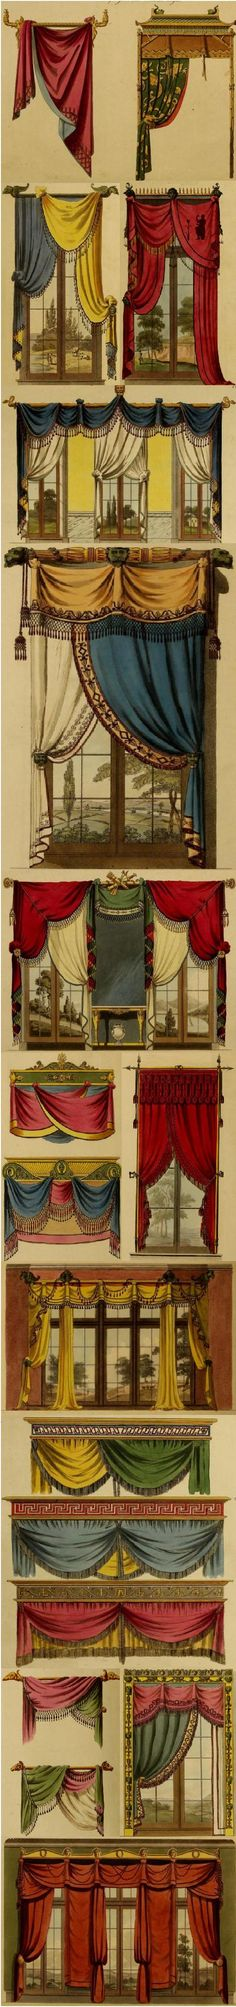 Beautiful drapery ideas from 1808, in the book, Collection of Designs for Household Furniture and Interior Decoration, in the Most Approved and Elegant Taste. You can read it on the DIY Collaboratorium's library page. The way it was!